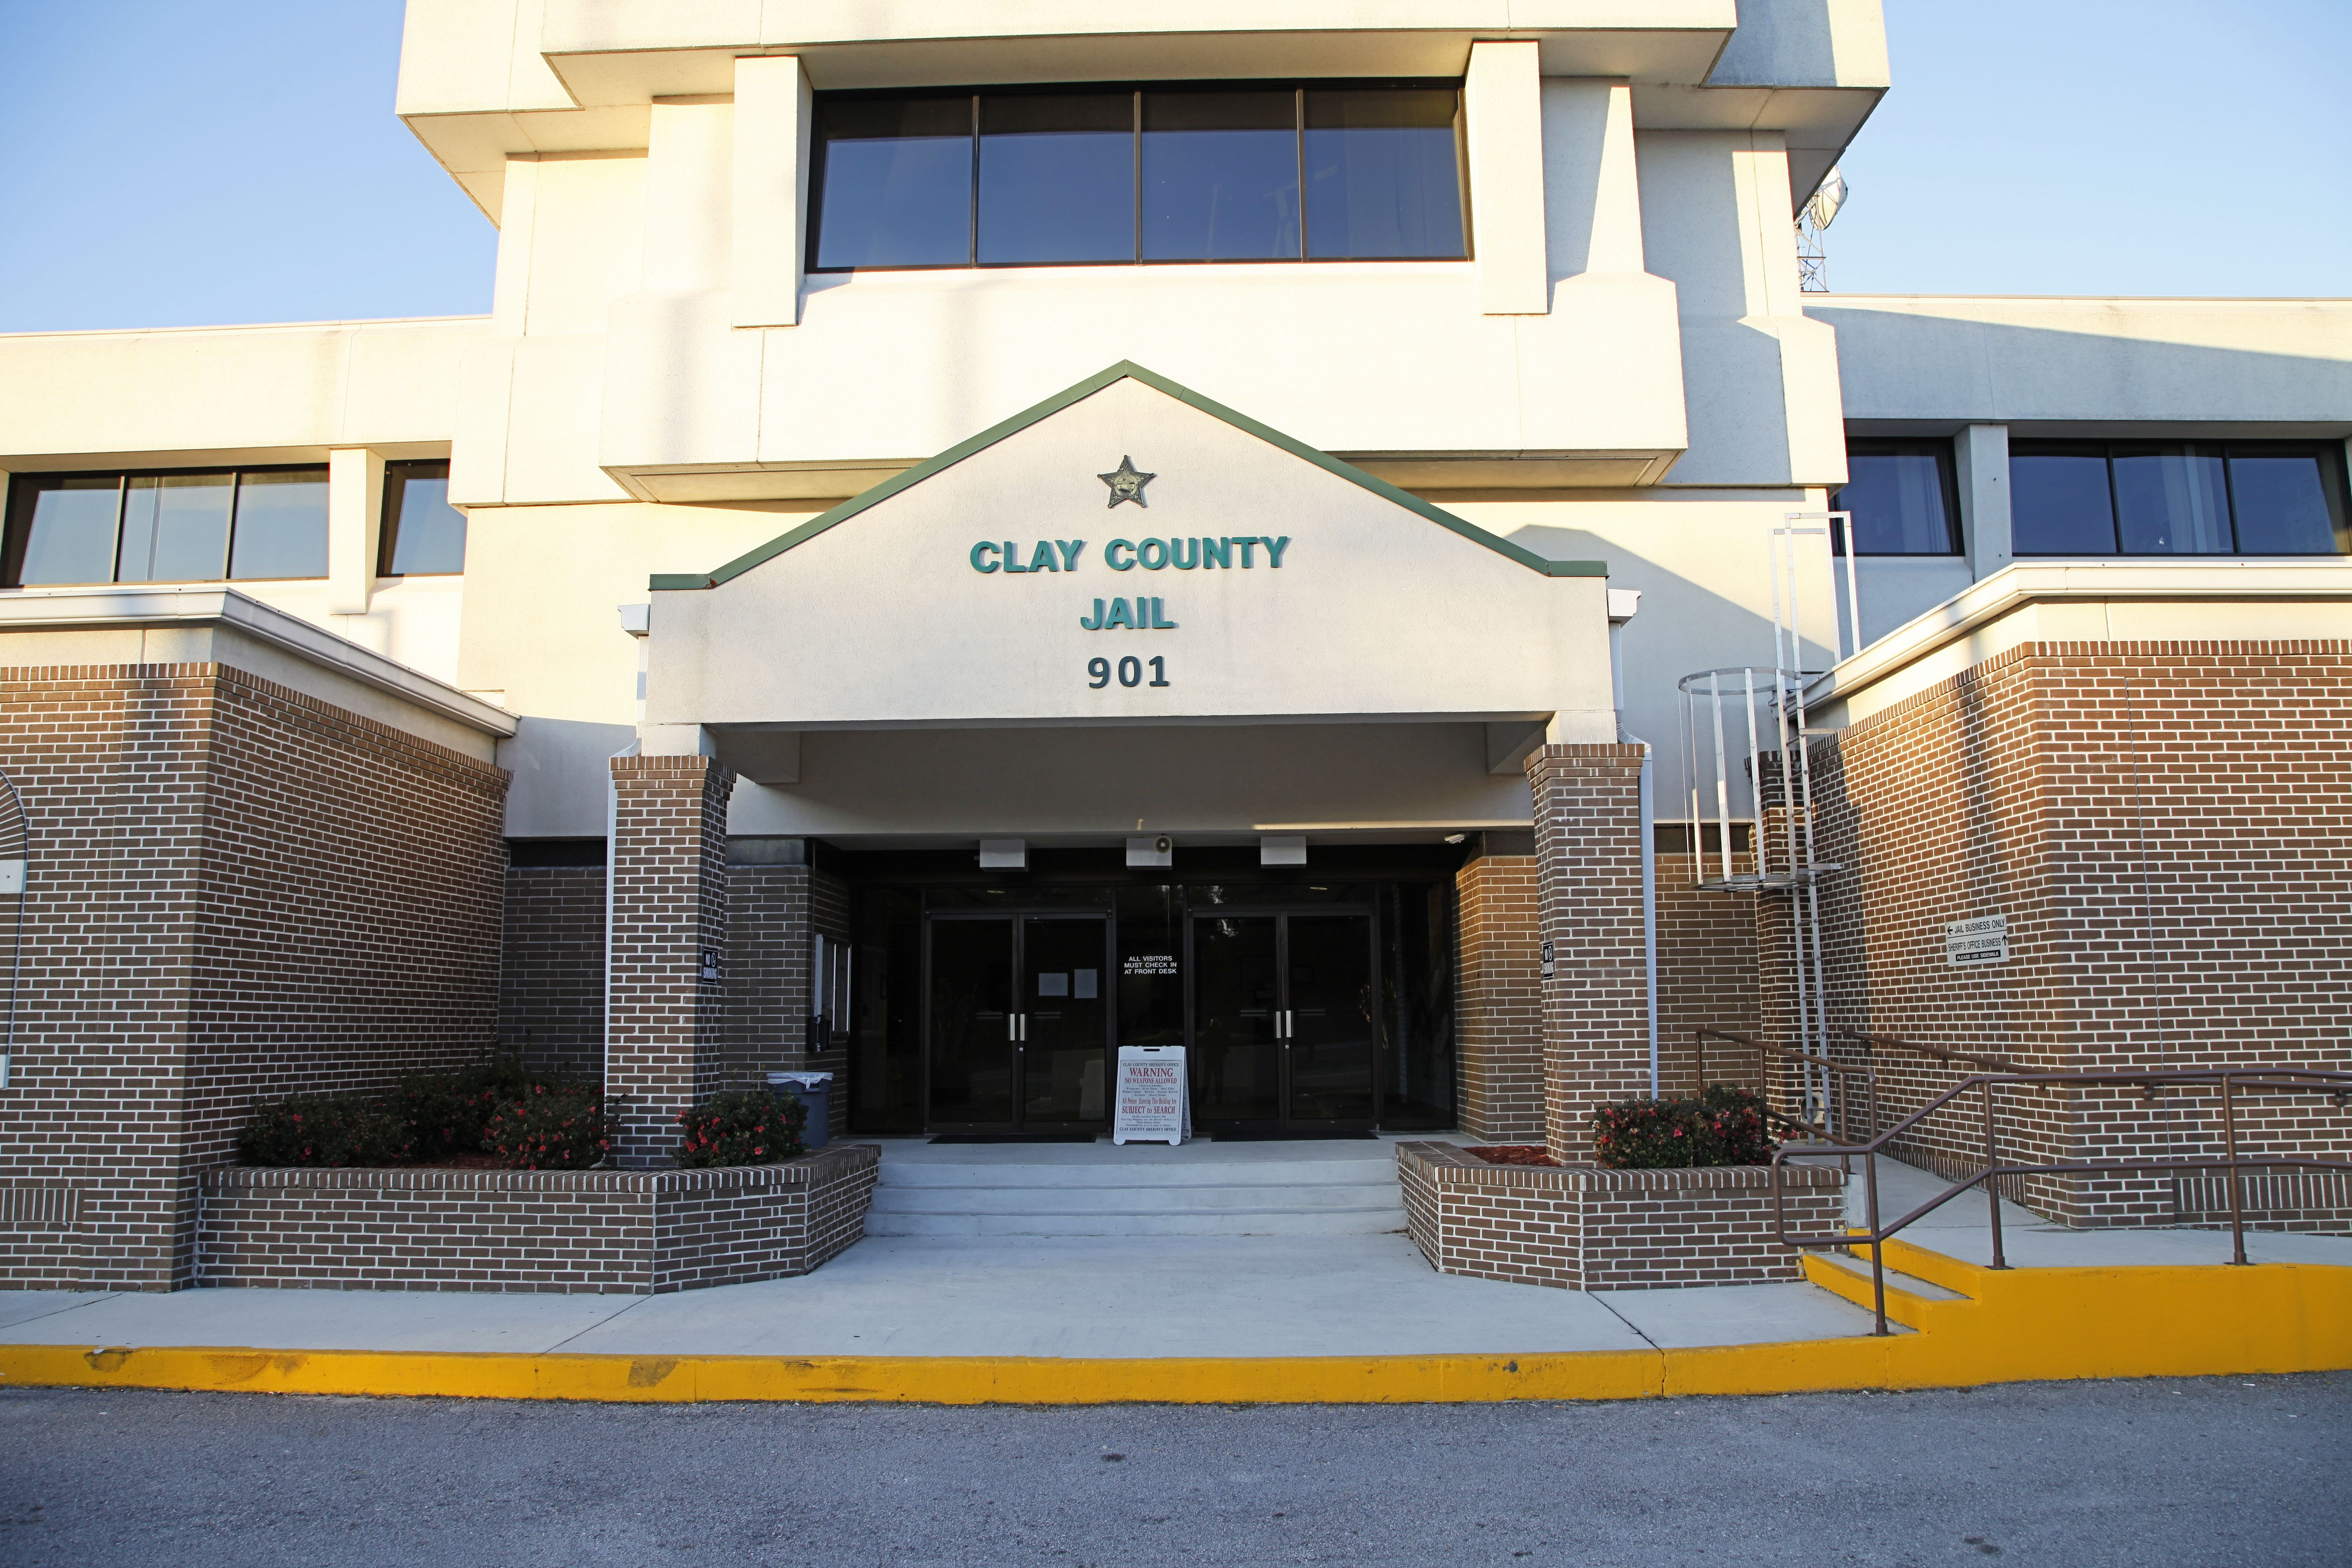 Clay County Jail